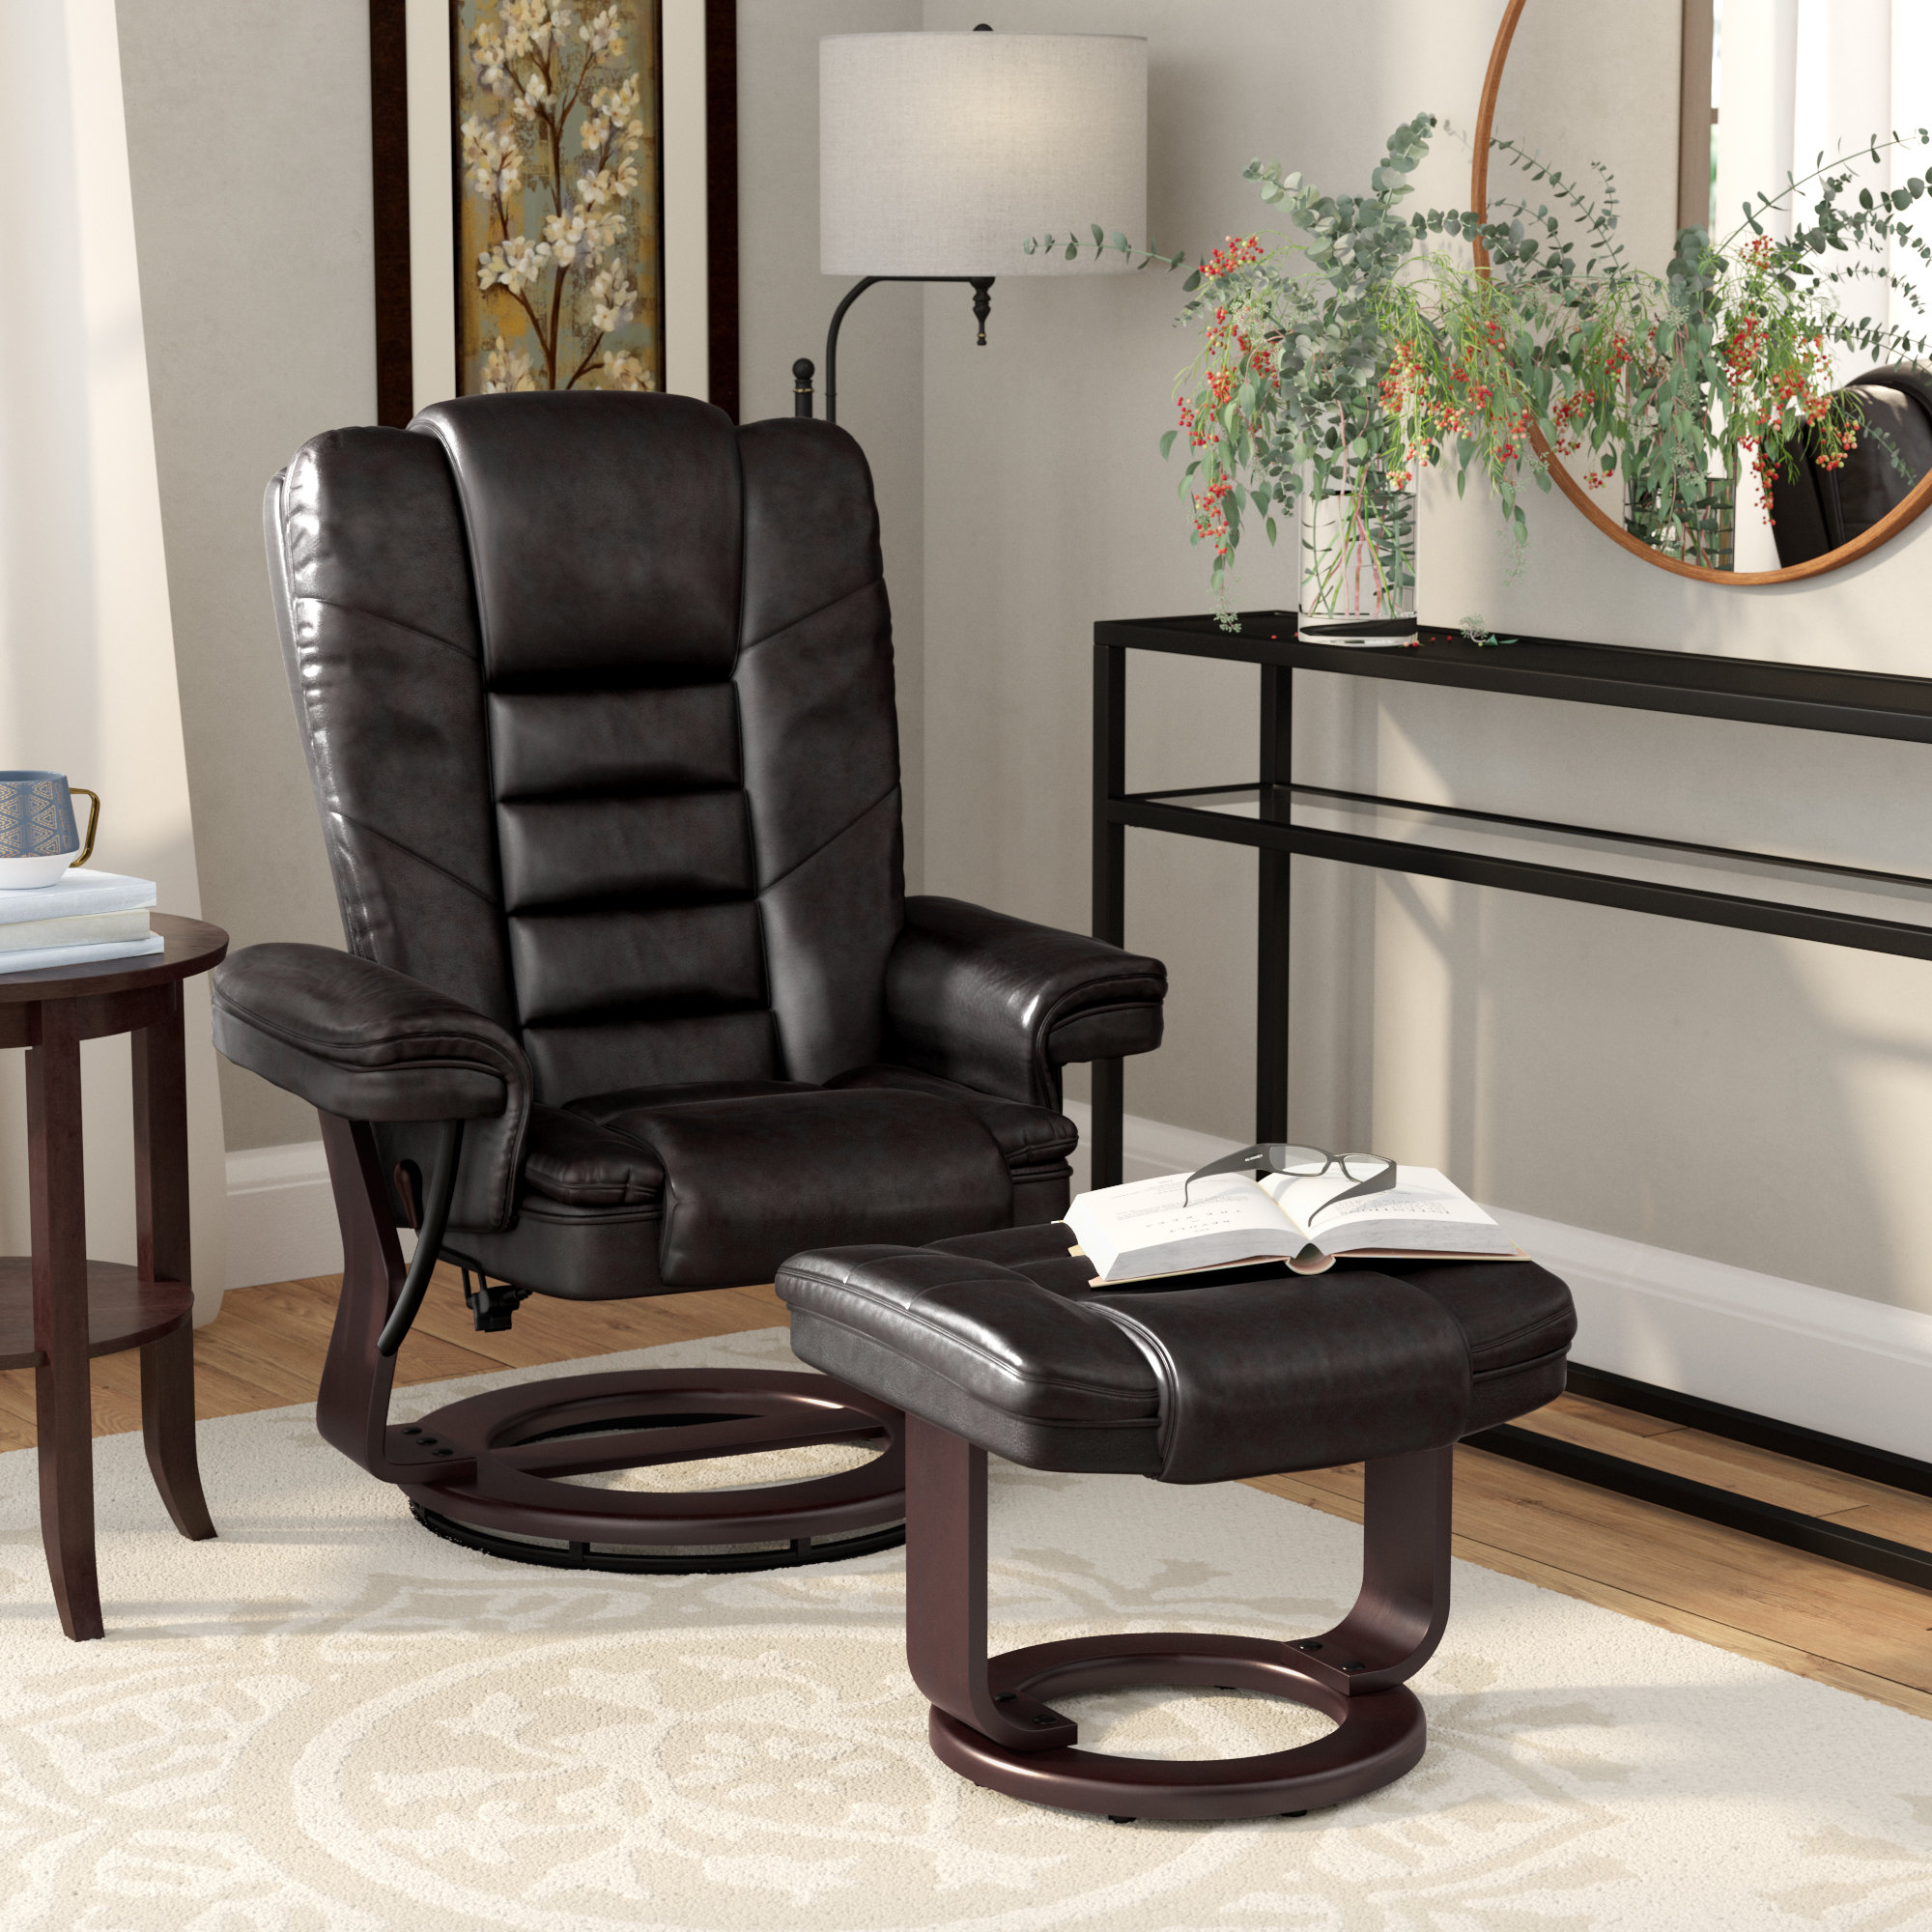 Alcott Hill Hammersdale Manual Swivel Recliner With Ottoman With Regard To Dale Iii Polyurethane Swivel Glider Recliners (Image 1 of 25)